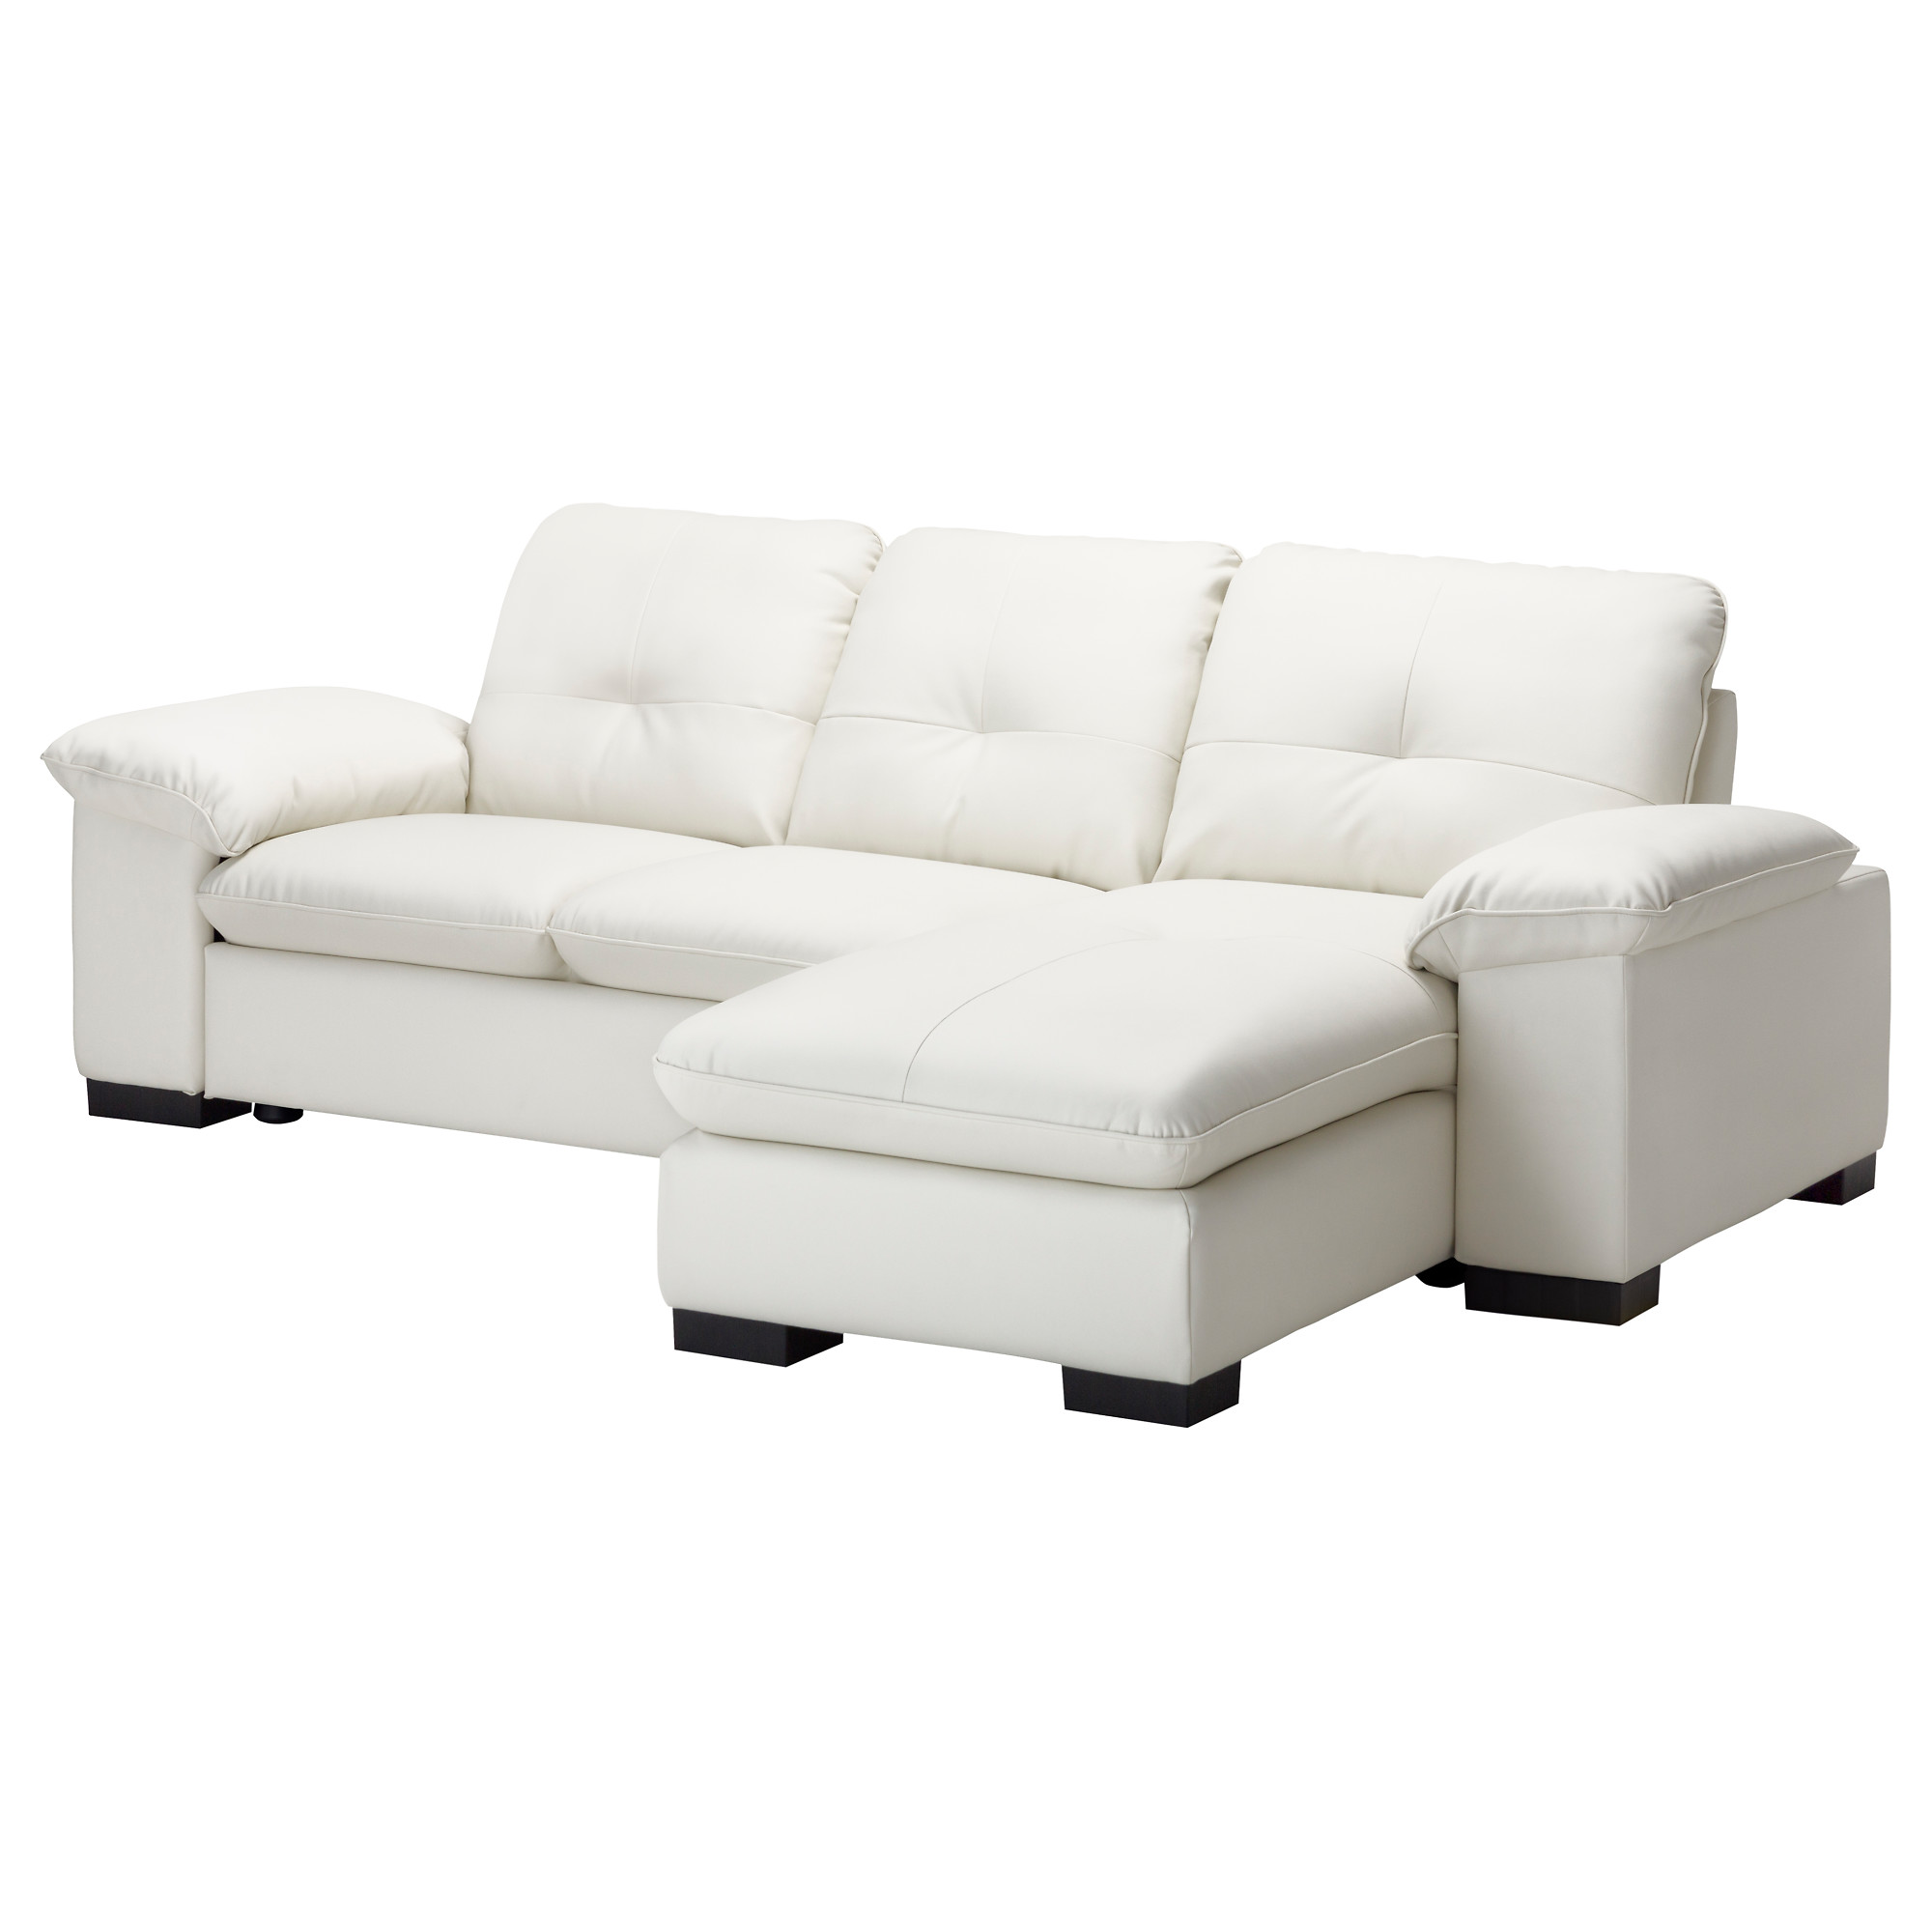 garden today chair leather product free white living abbyson overstock shipping sleeper single jackson home